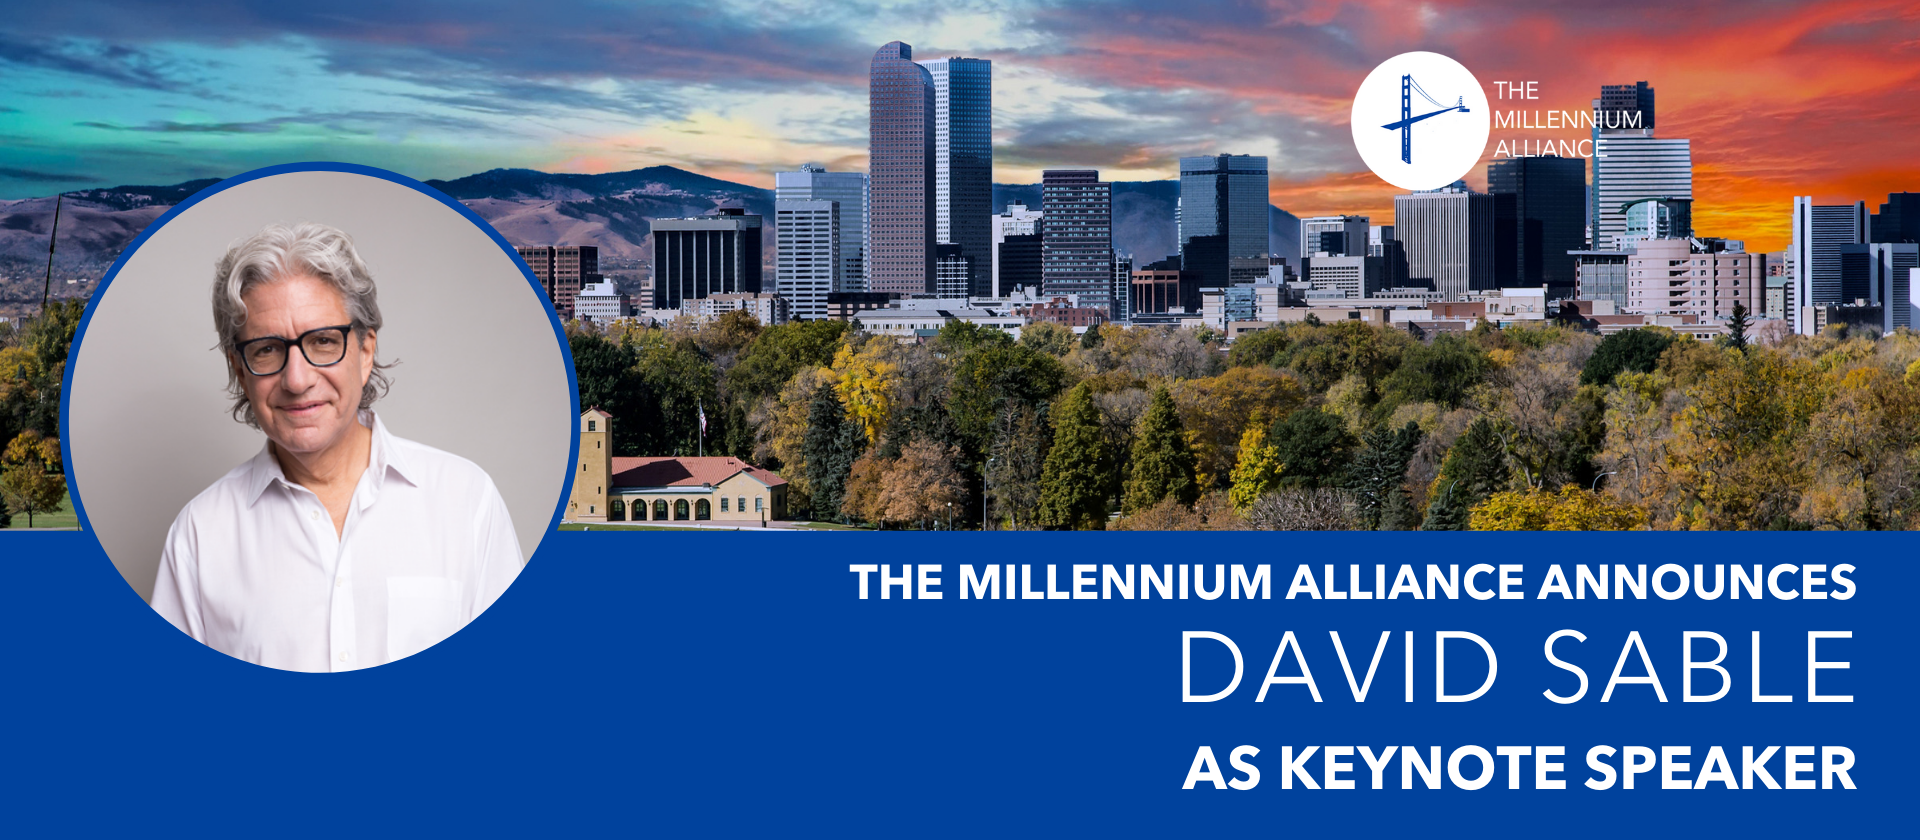 David Sable Keynote Speaker Announcement Millennium Alliance Assembly